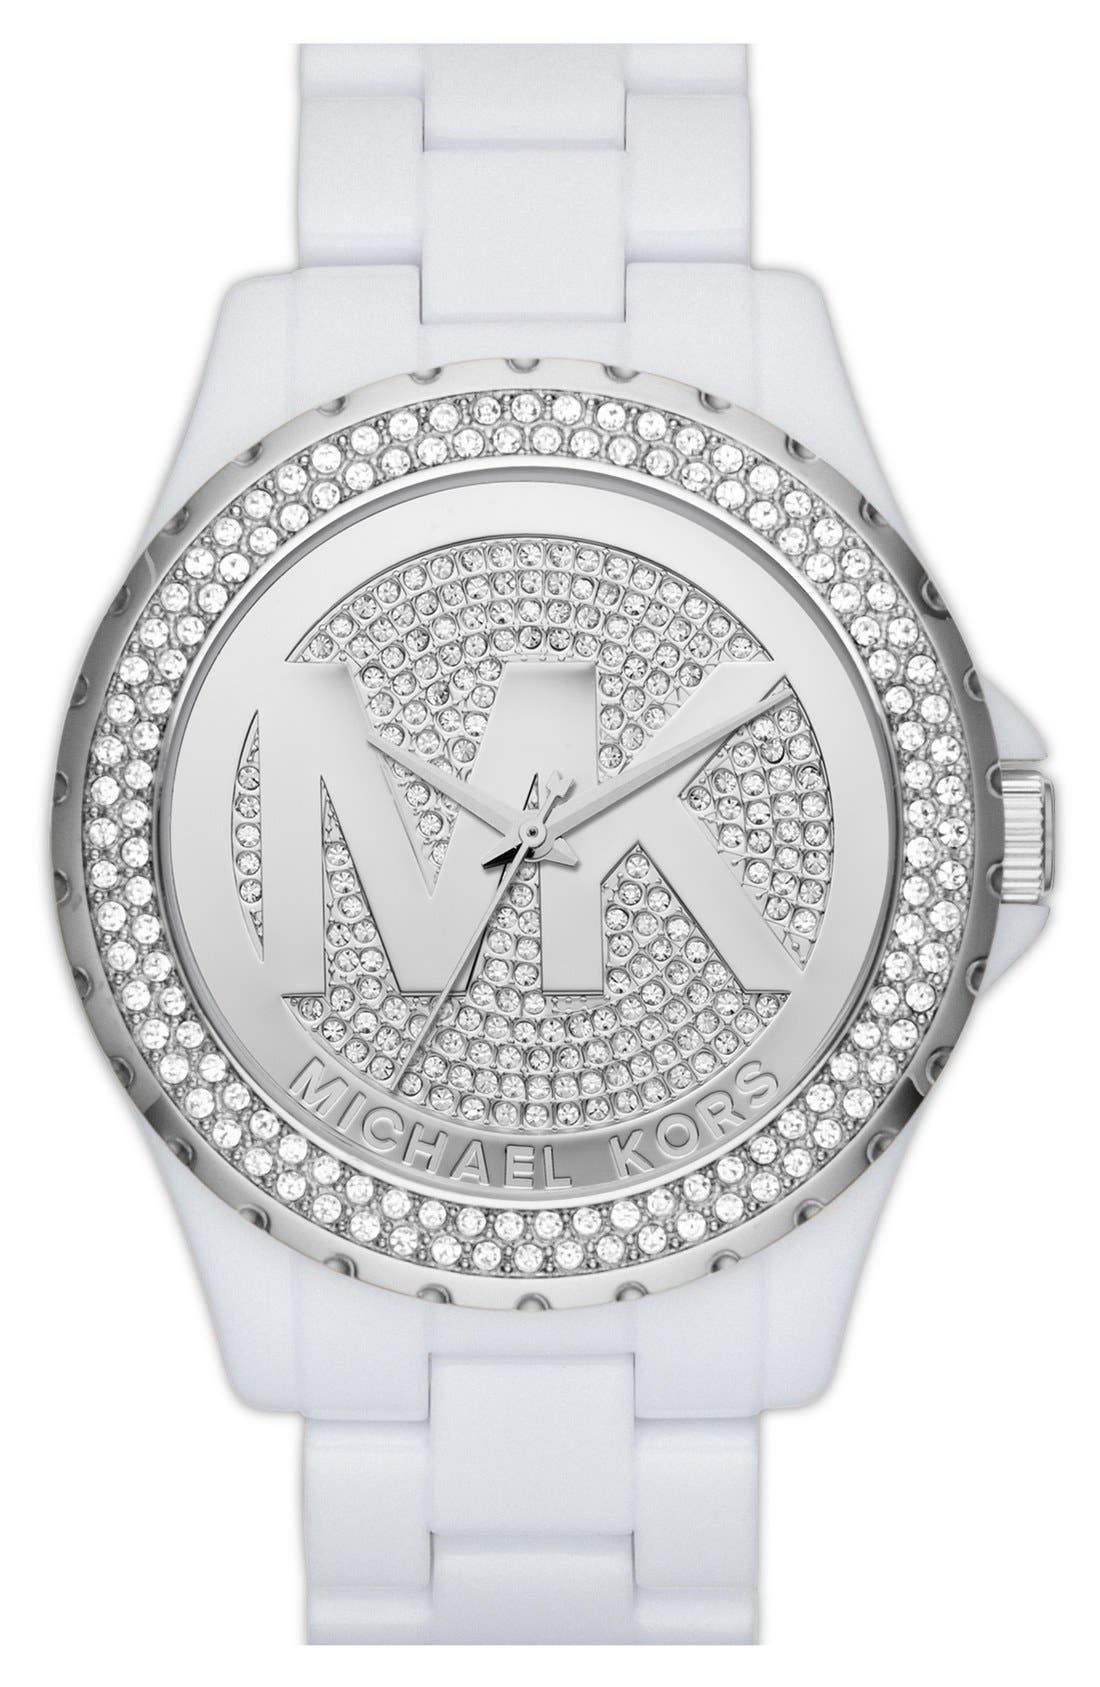 Main Image - Michael Kors 'Madison' Pavé Logo Watch, 42mm